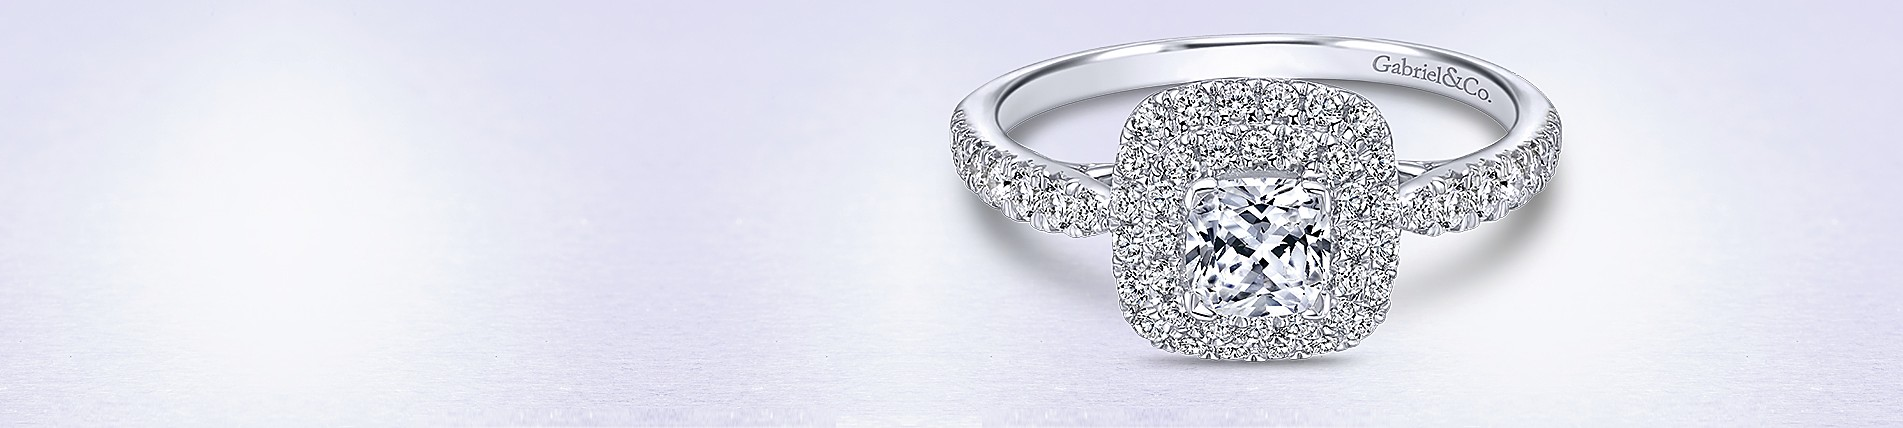 com solitaire rings product engagement diamond white solid cushion from halo gold dhgate cut ring